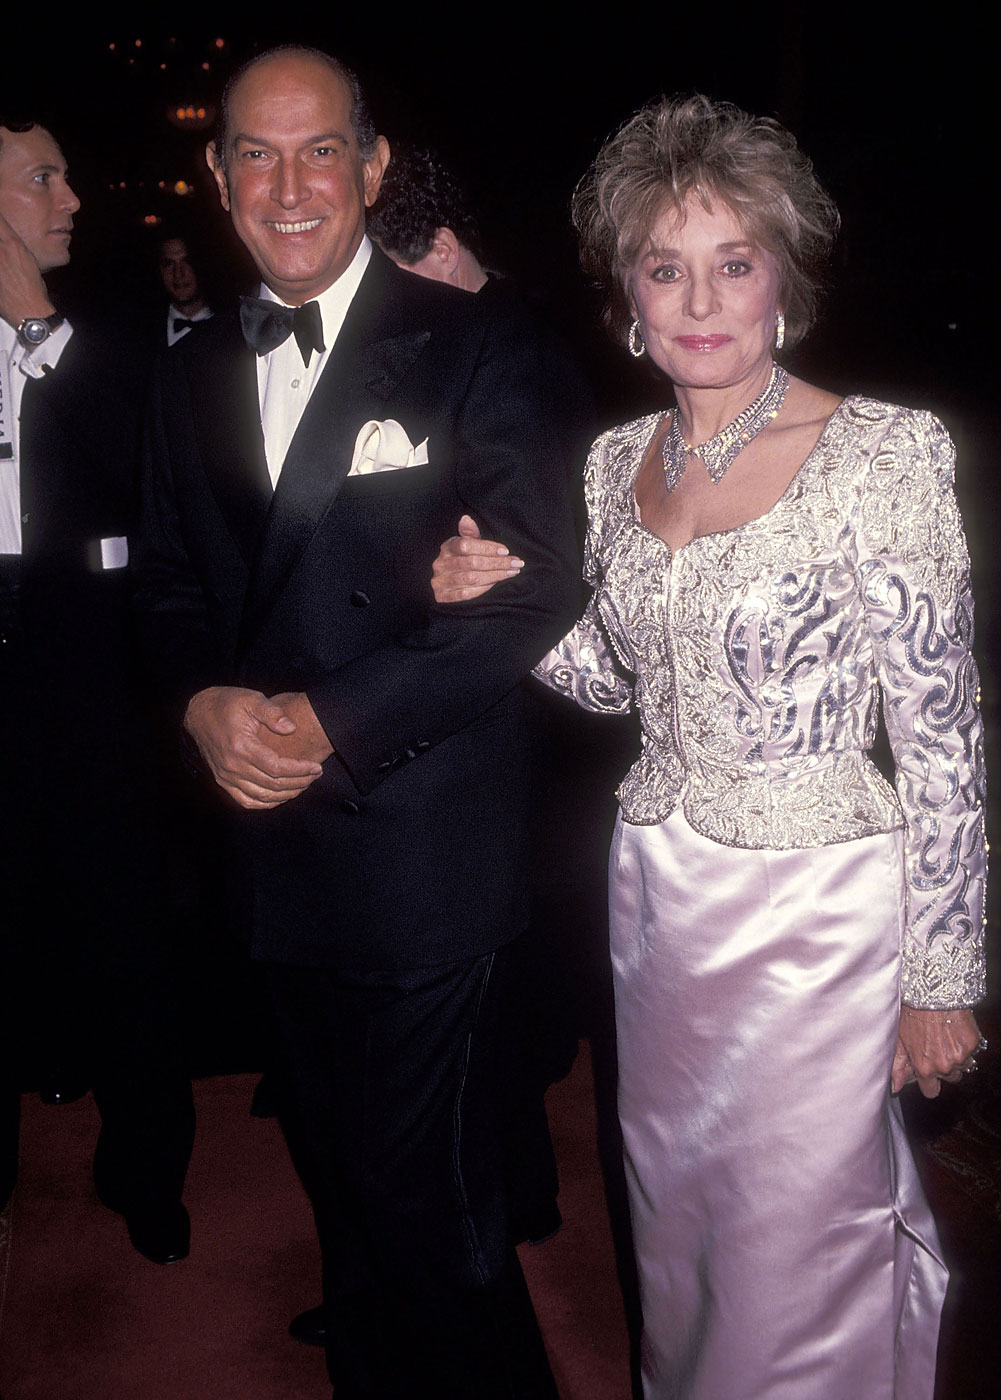 Oscar de la Renta and  Barbara Walters attend Brooke Astor's 90th Birthday Celebration on March 5, 1992 at the Seventh Regiment Armory in New York City.